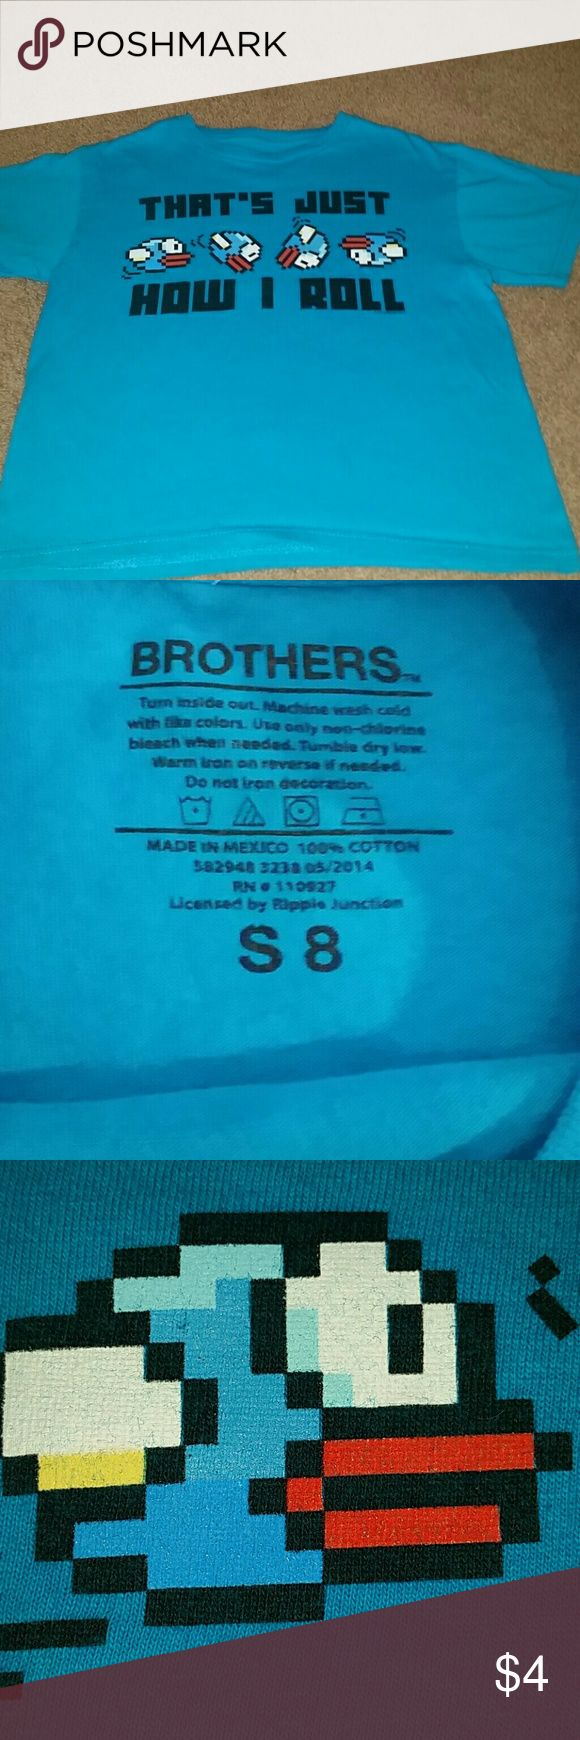 Selling this Brothers brand t shirt. on Poshmark! My username is: pp12345. #shopmycloset #poshmark #fashion #shopping #style #forsale #Brothers  #Other